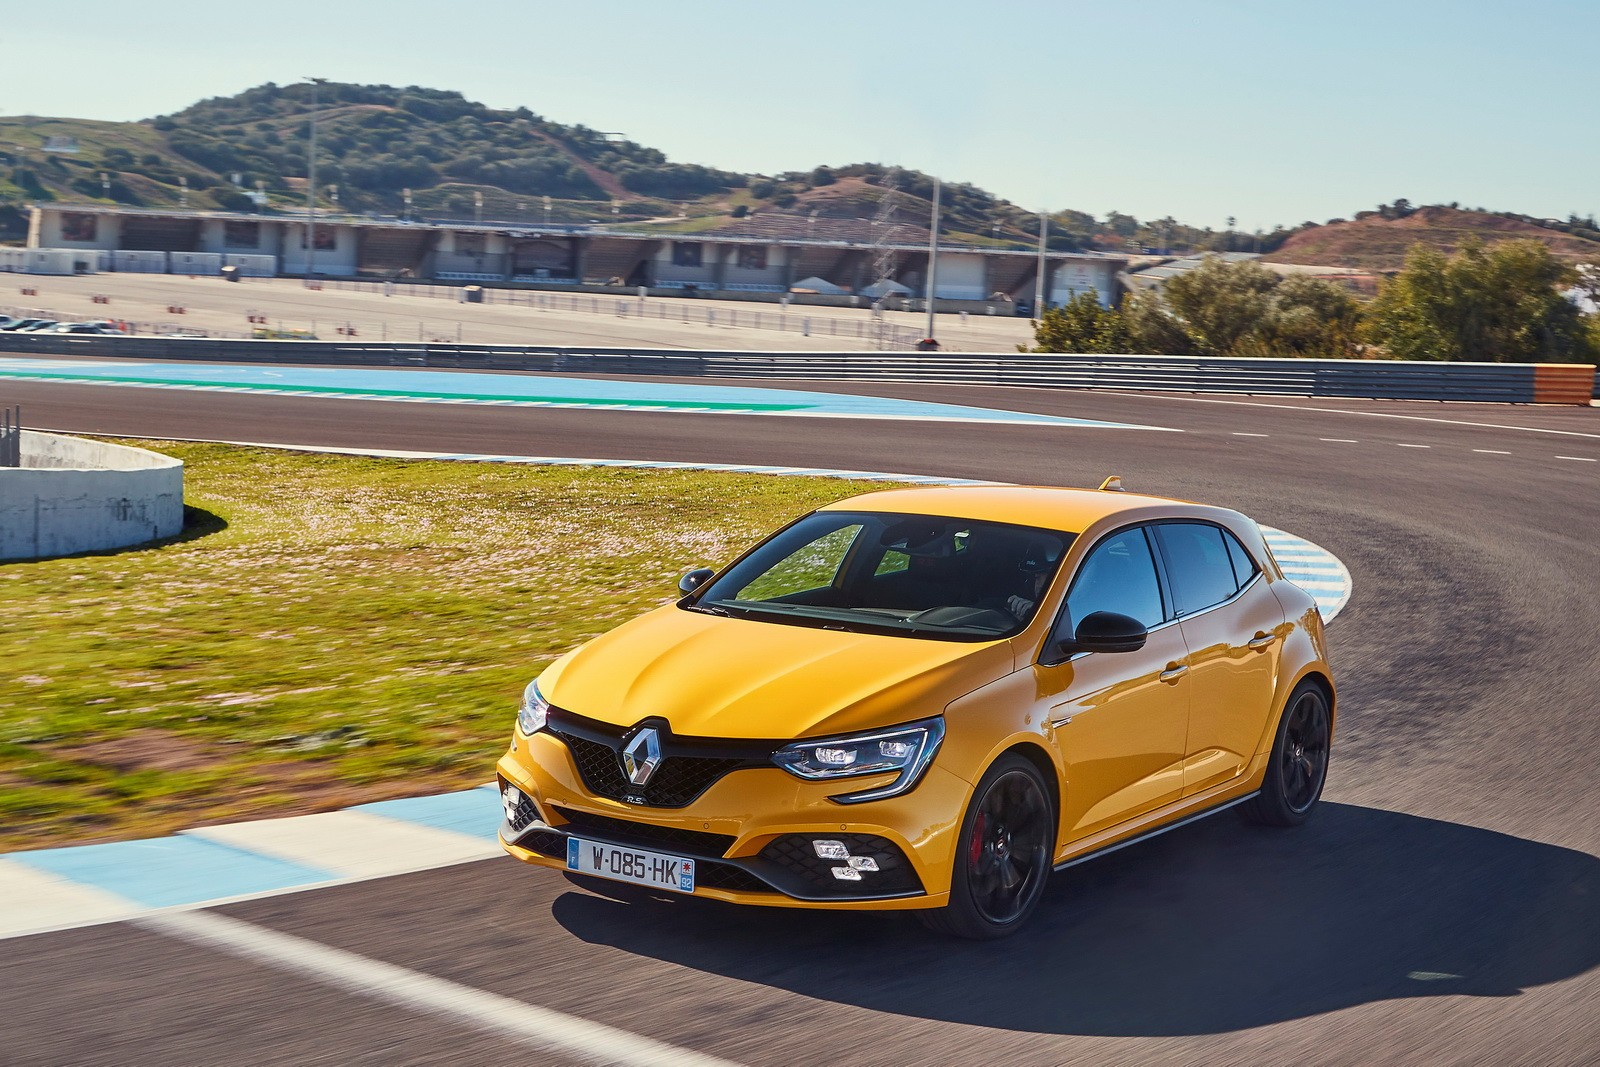 new megane rs does crazy lap on the nurburgring looks fast on autobahn autoevolution. Black Bedroom Furniture Sets. Home Design Ideas